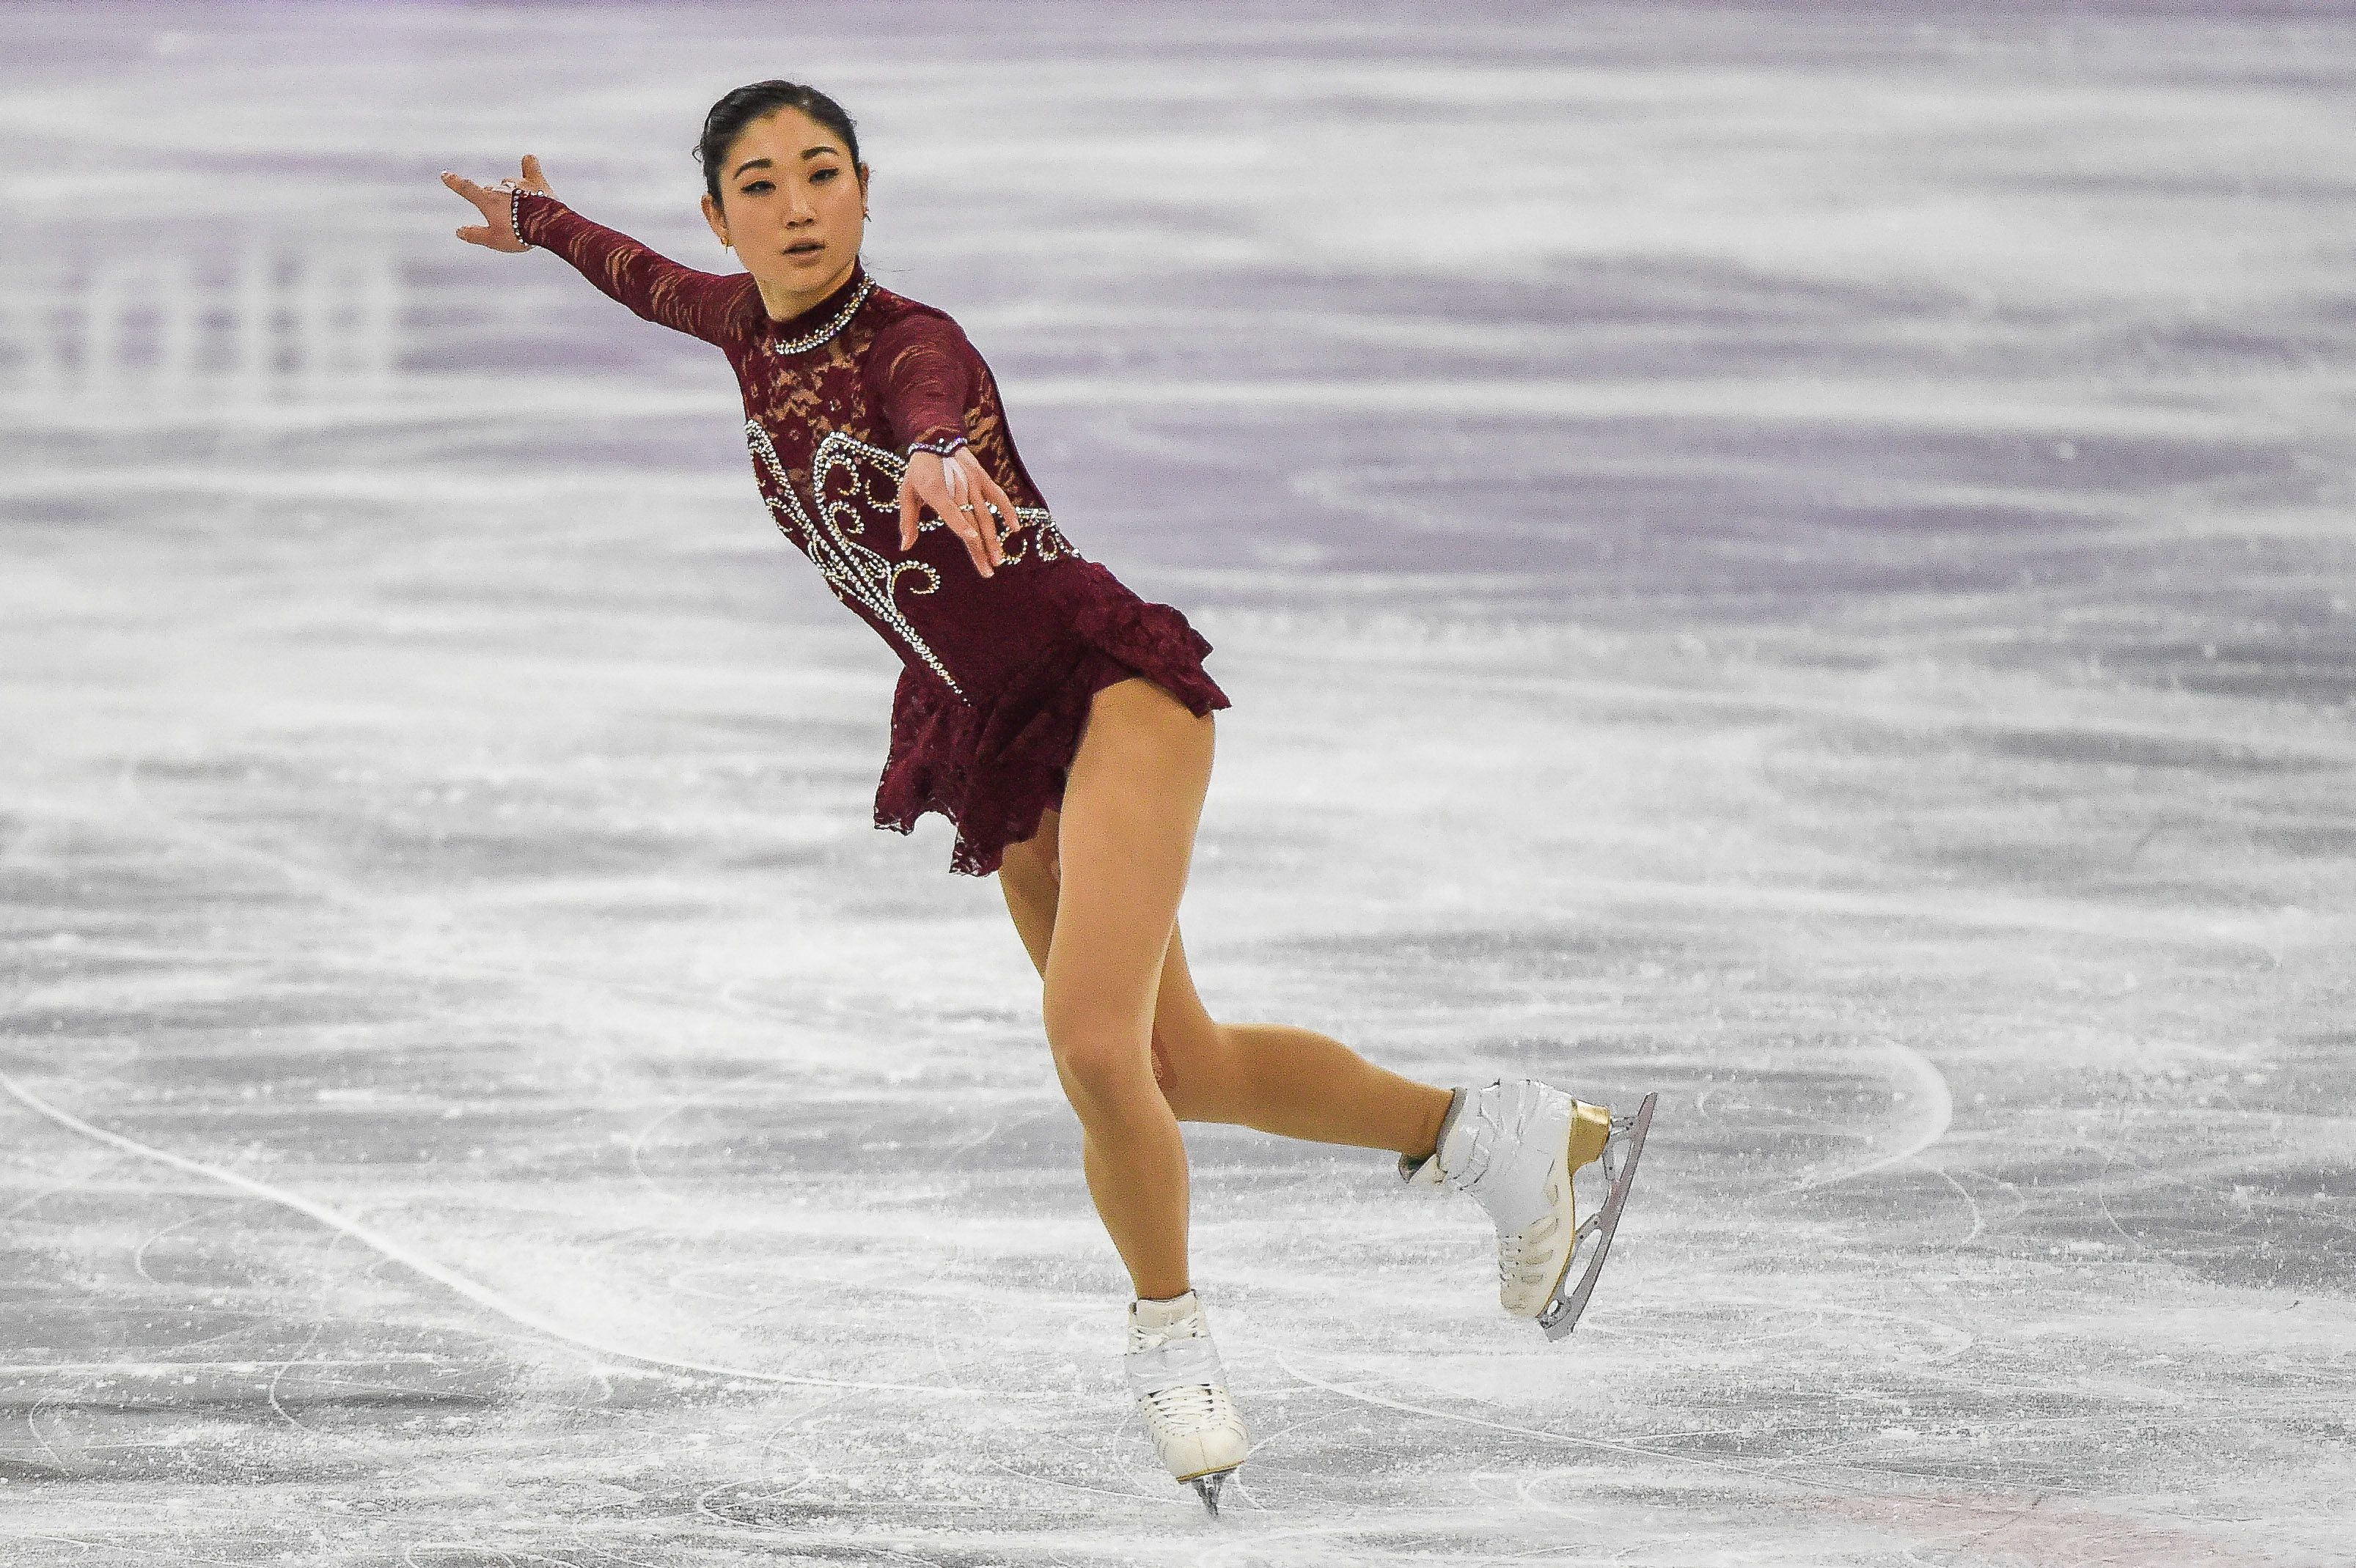 Mirai Nagasu is the first American woman to land a triple axel at the Winter Games